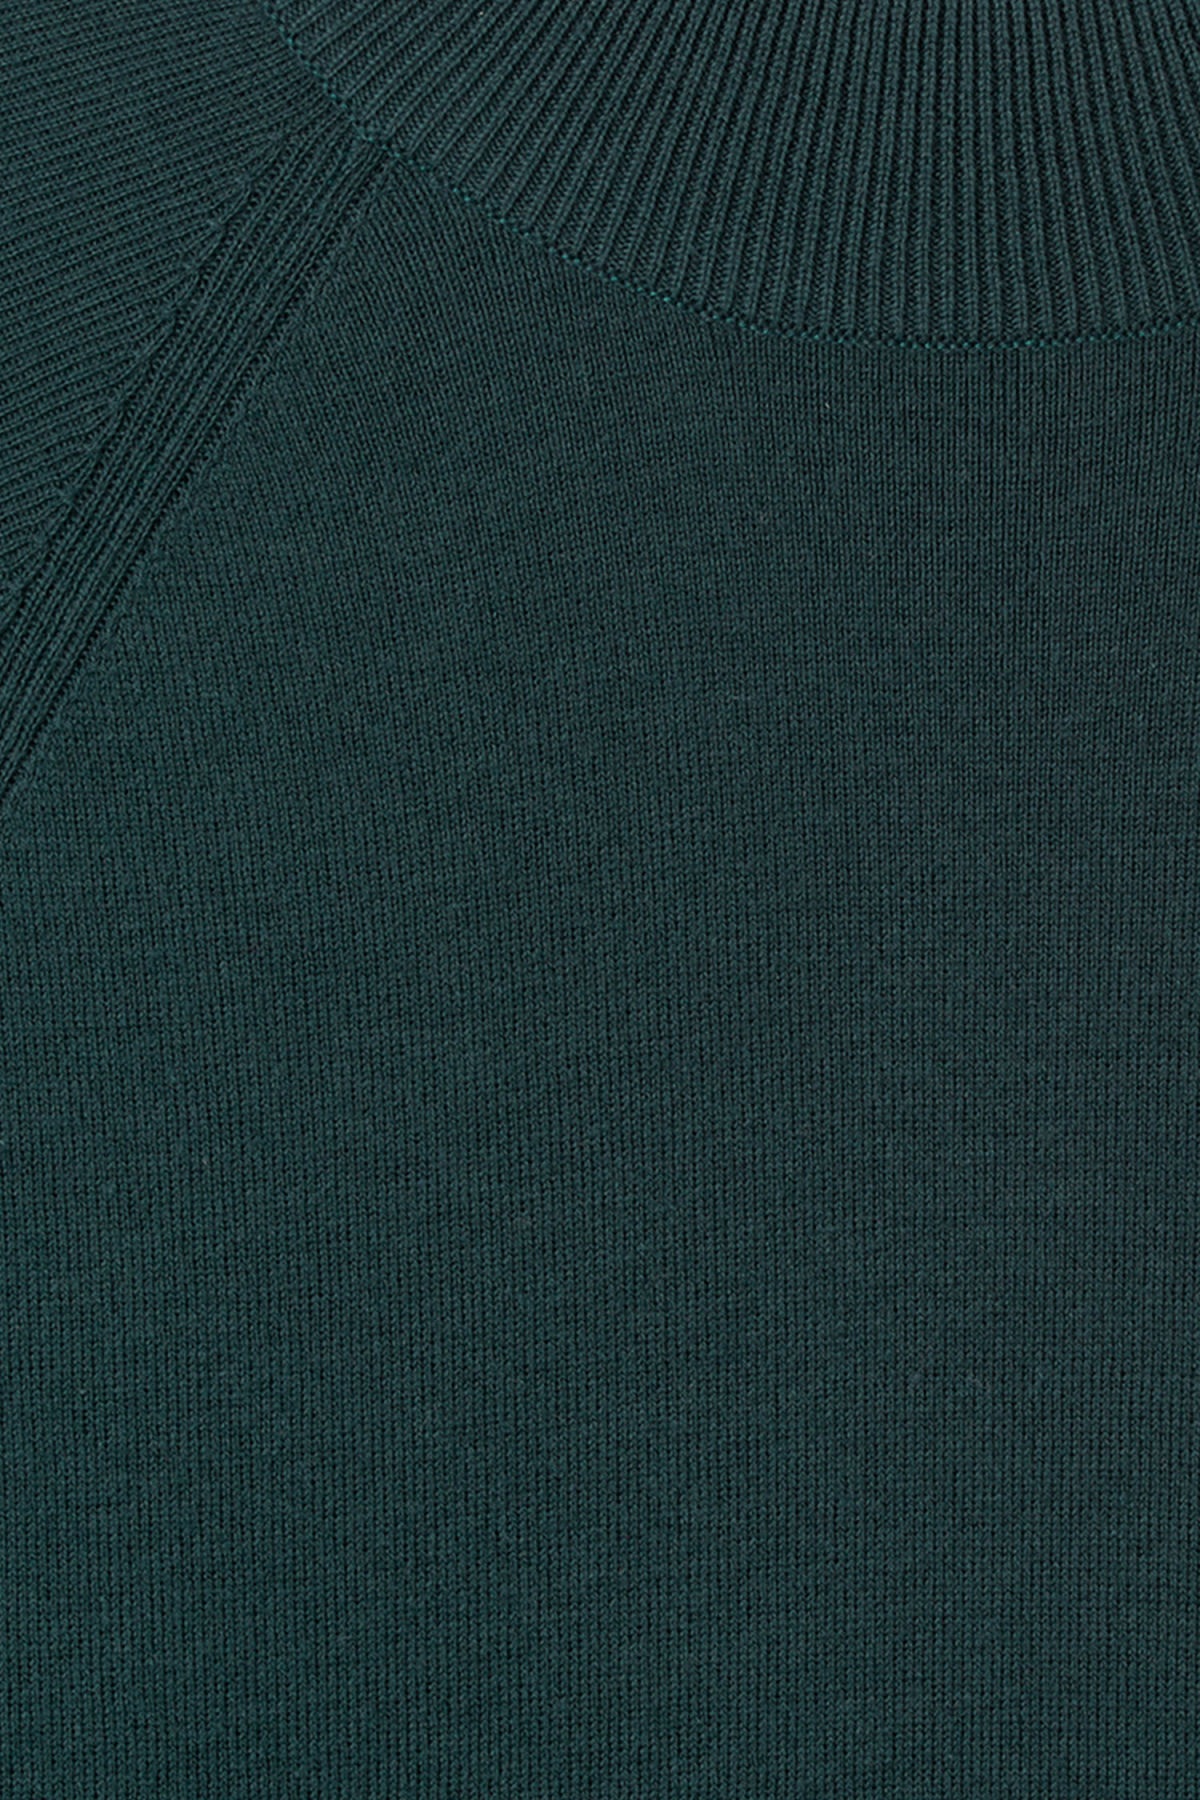 Detailed image of Weekday true sweater in turquoise